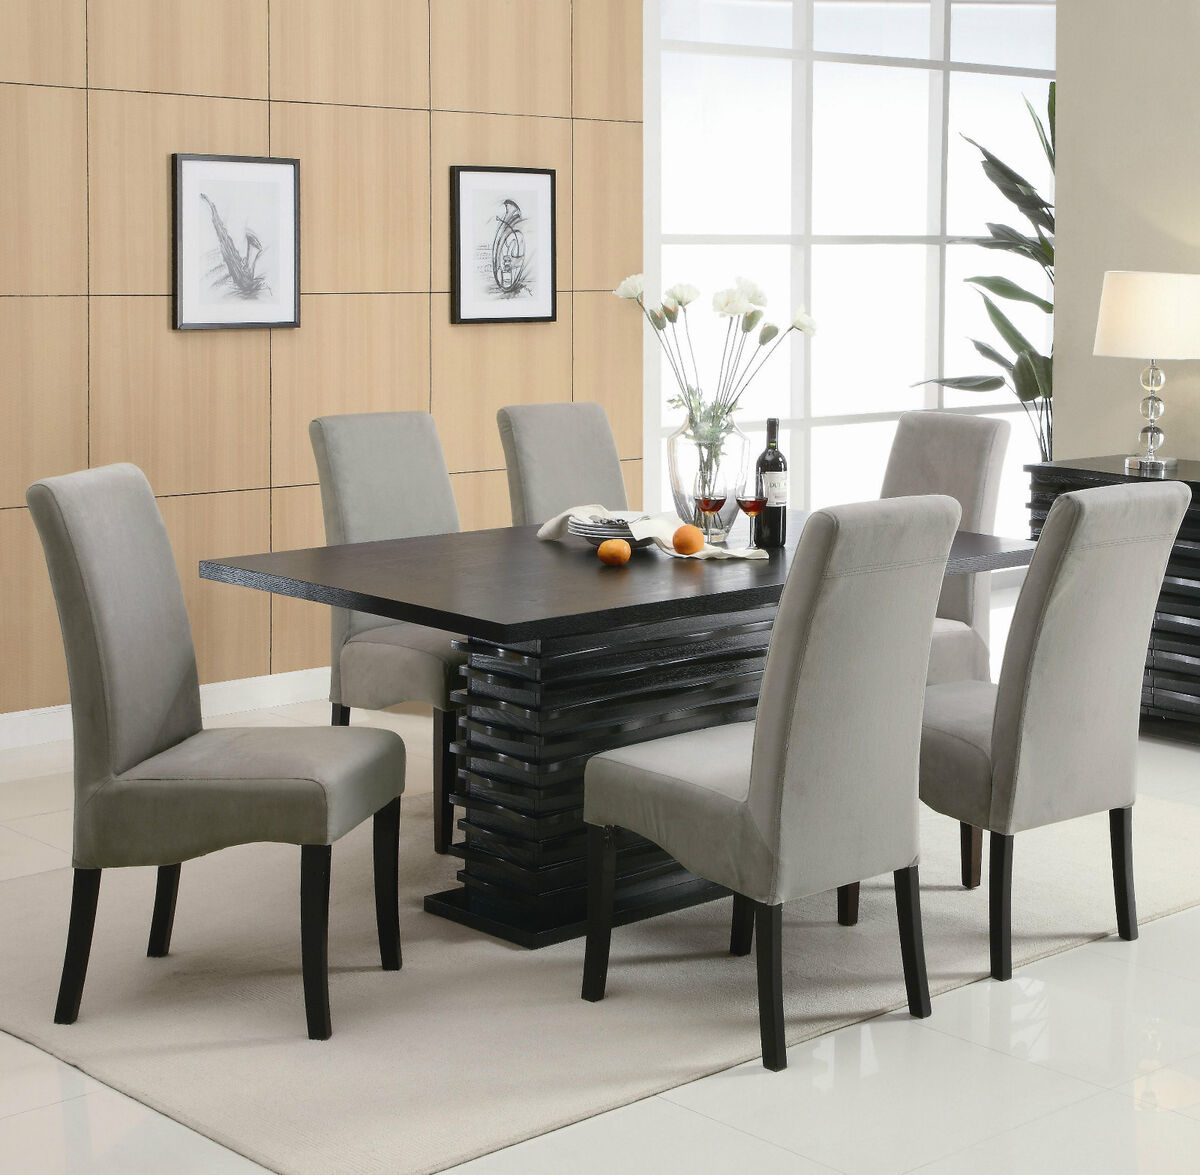 dining table furniture contemporary dining table chairs. Black Bedroom Furniture Sets. Home Design Ideas